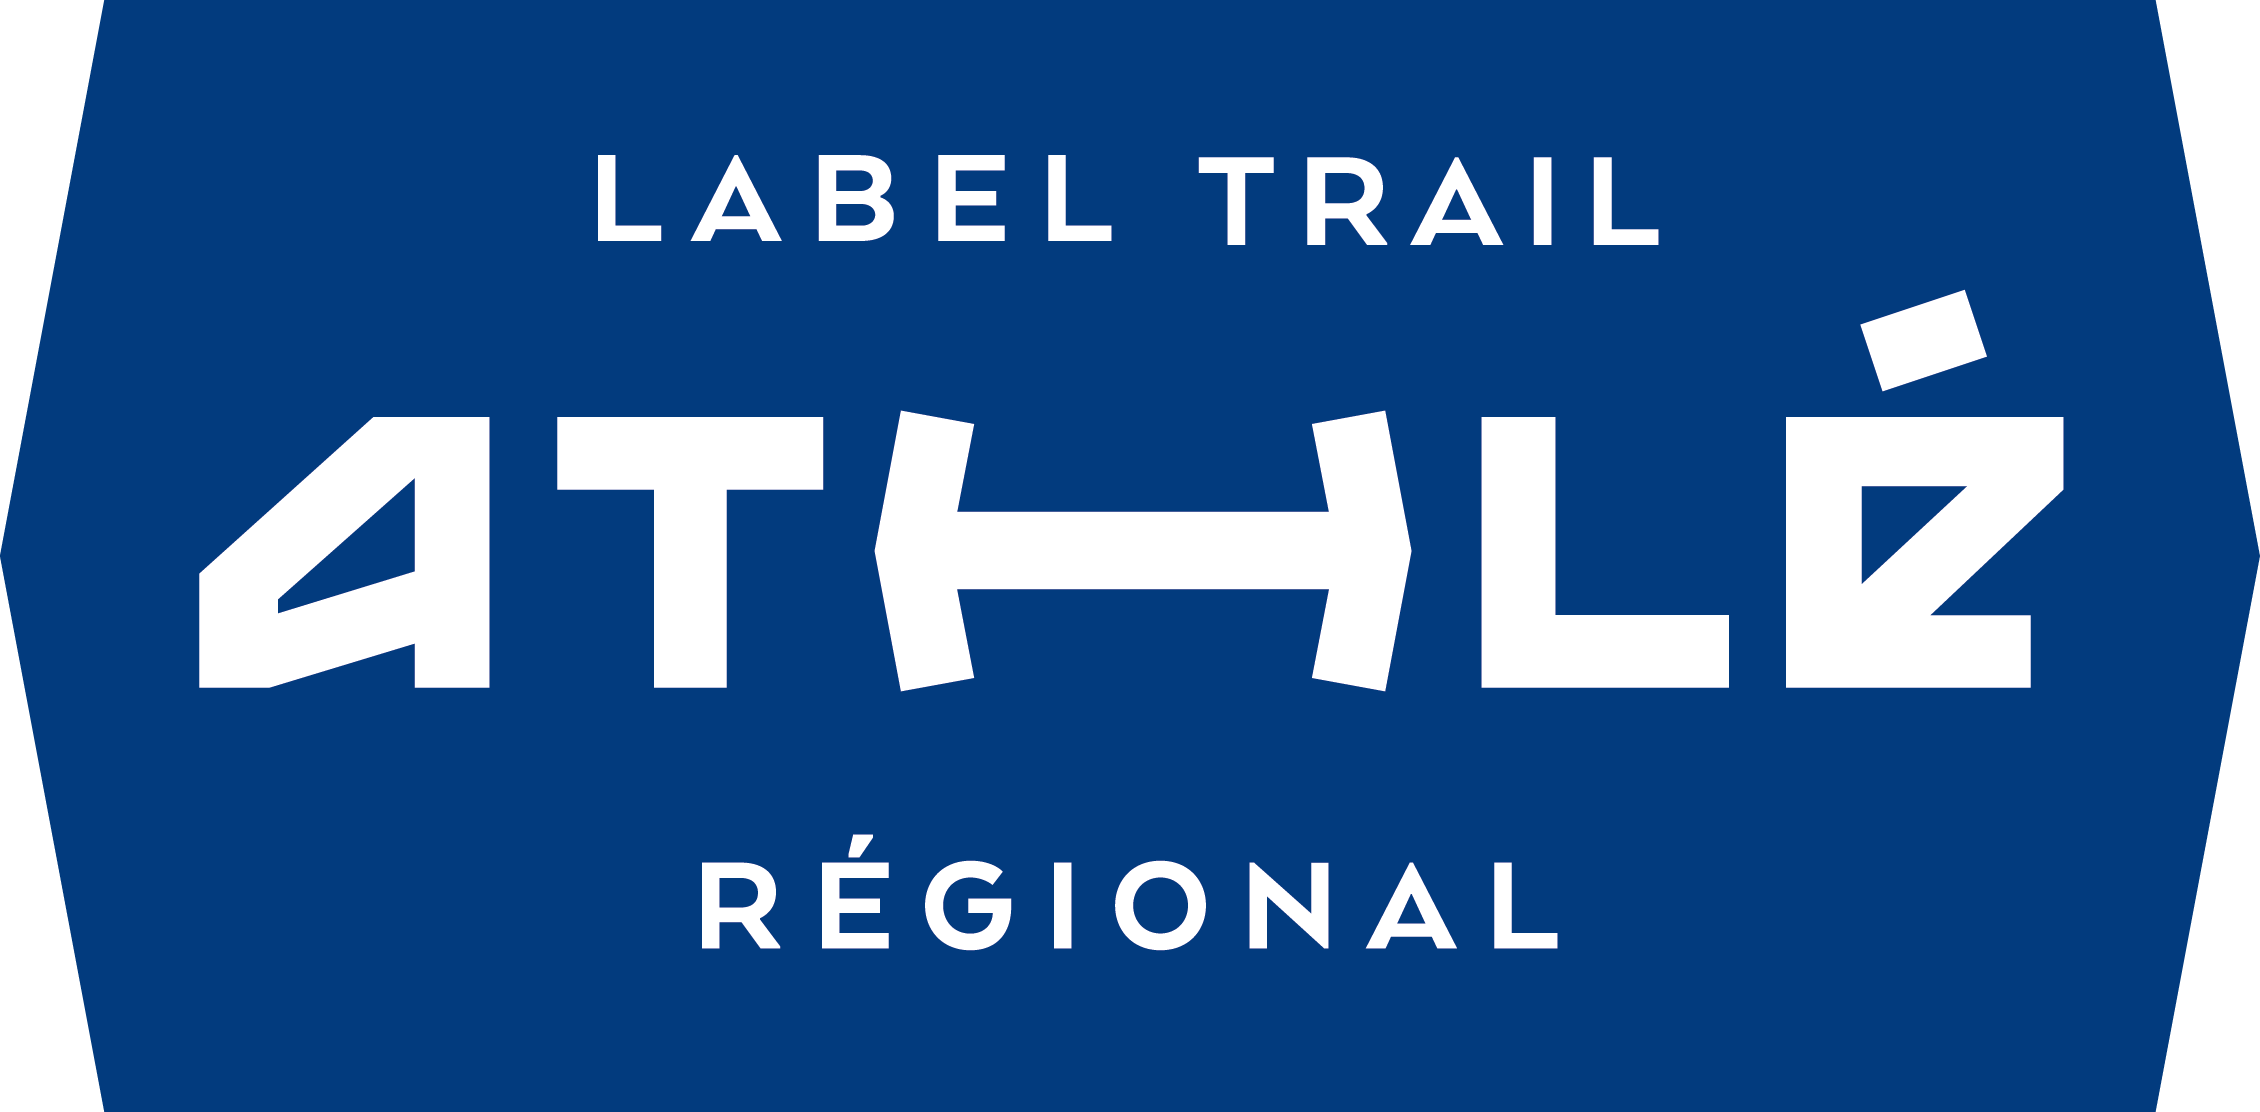 Label_Trail_Regional_ATHLE%20bleu